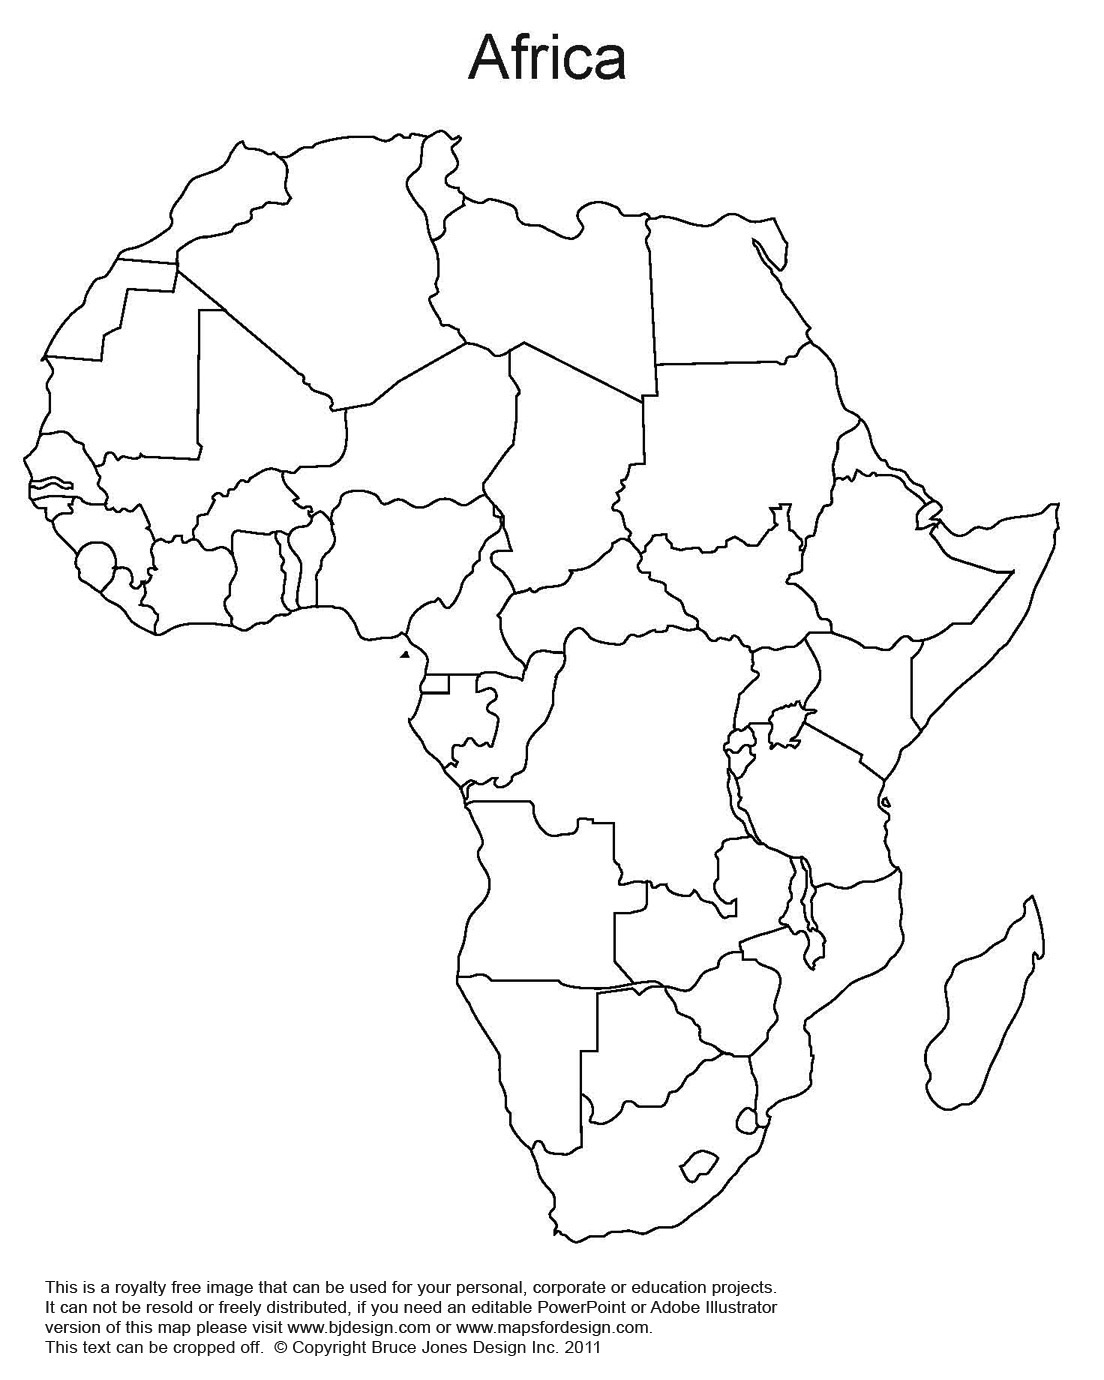 Africa World Regional Blank Printable map, outline map, royalty free